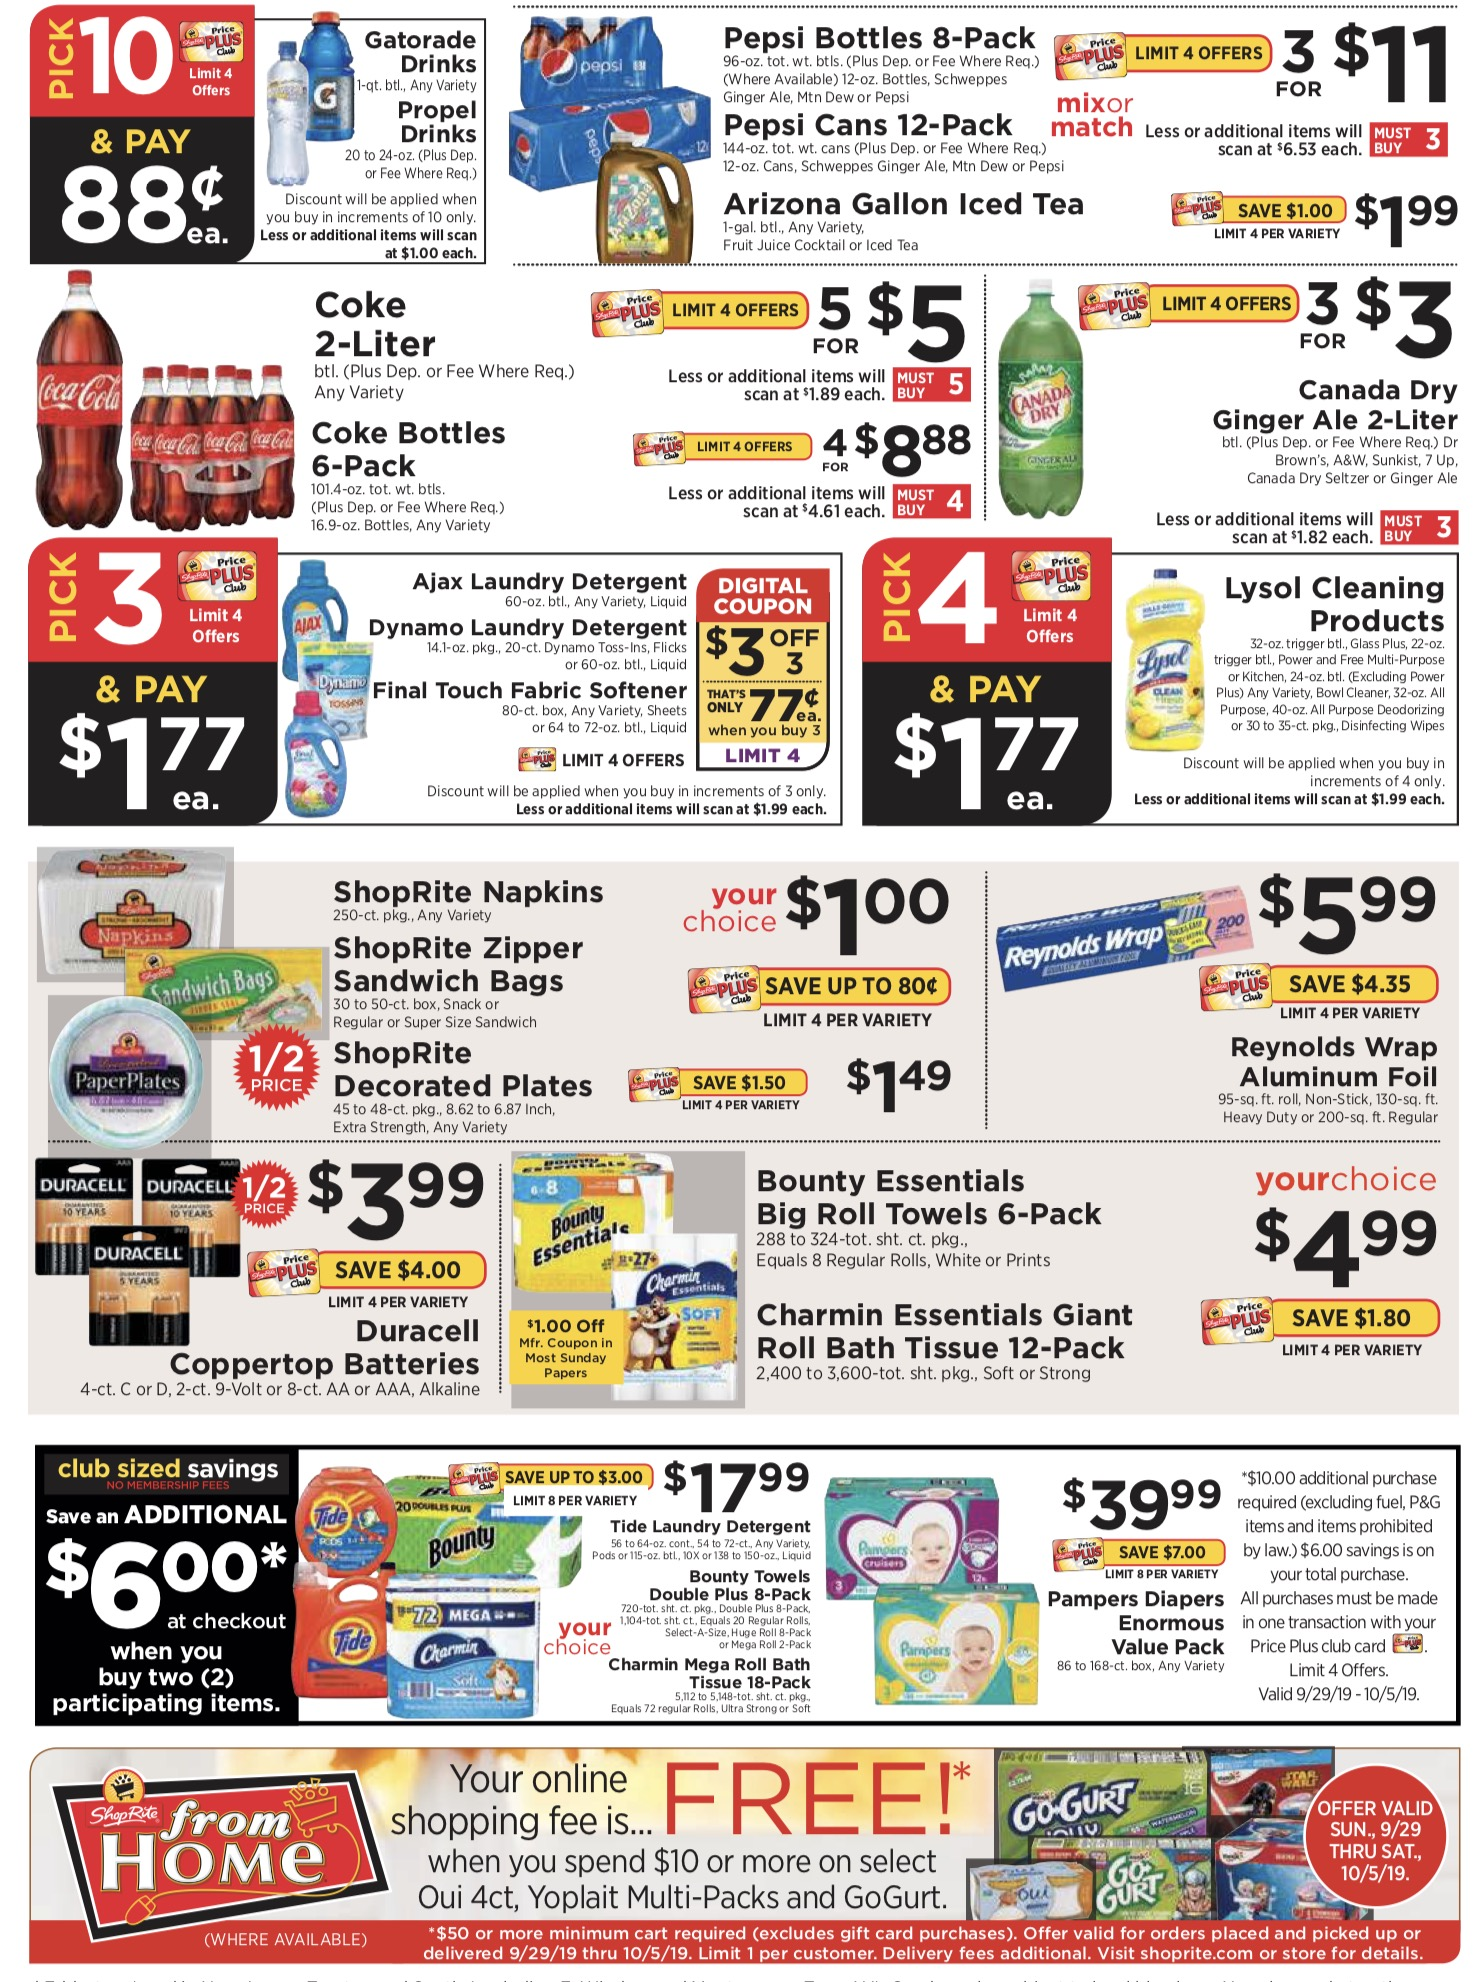 ShopRite Weekly Ad (9/29/19 - 10/5/19) Early Preview